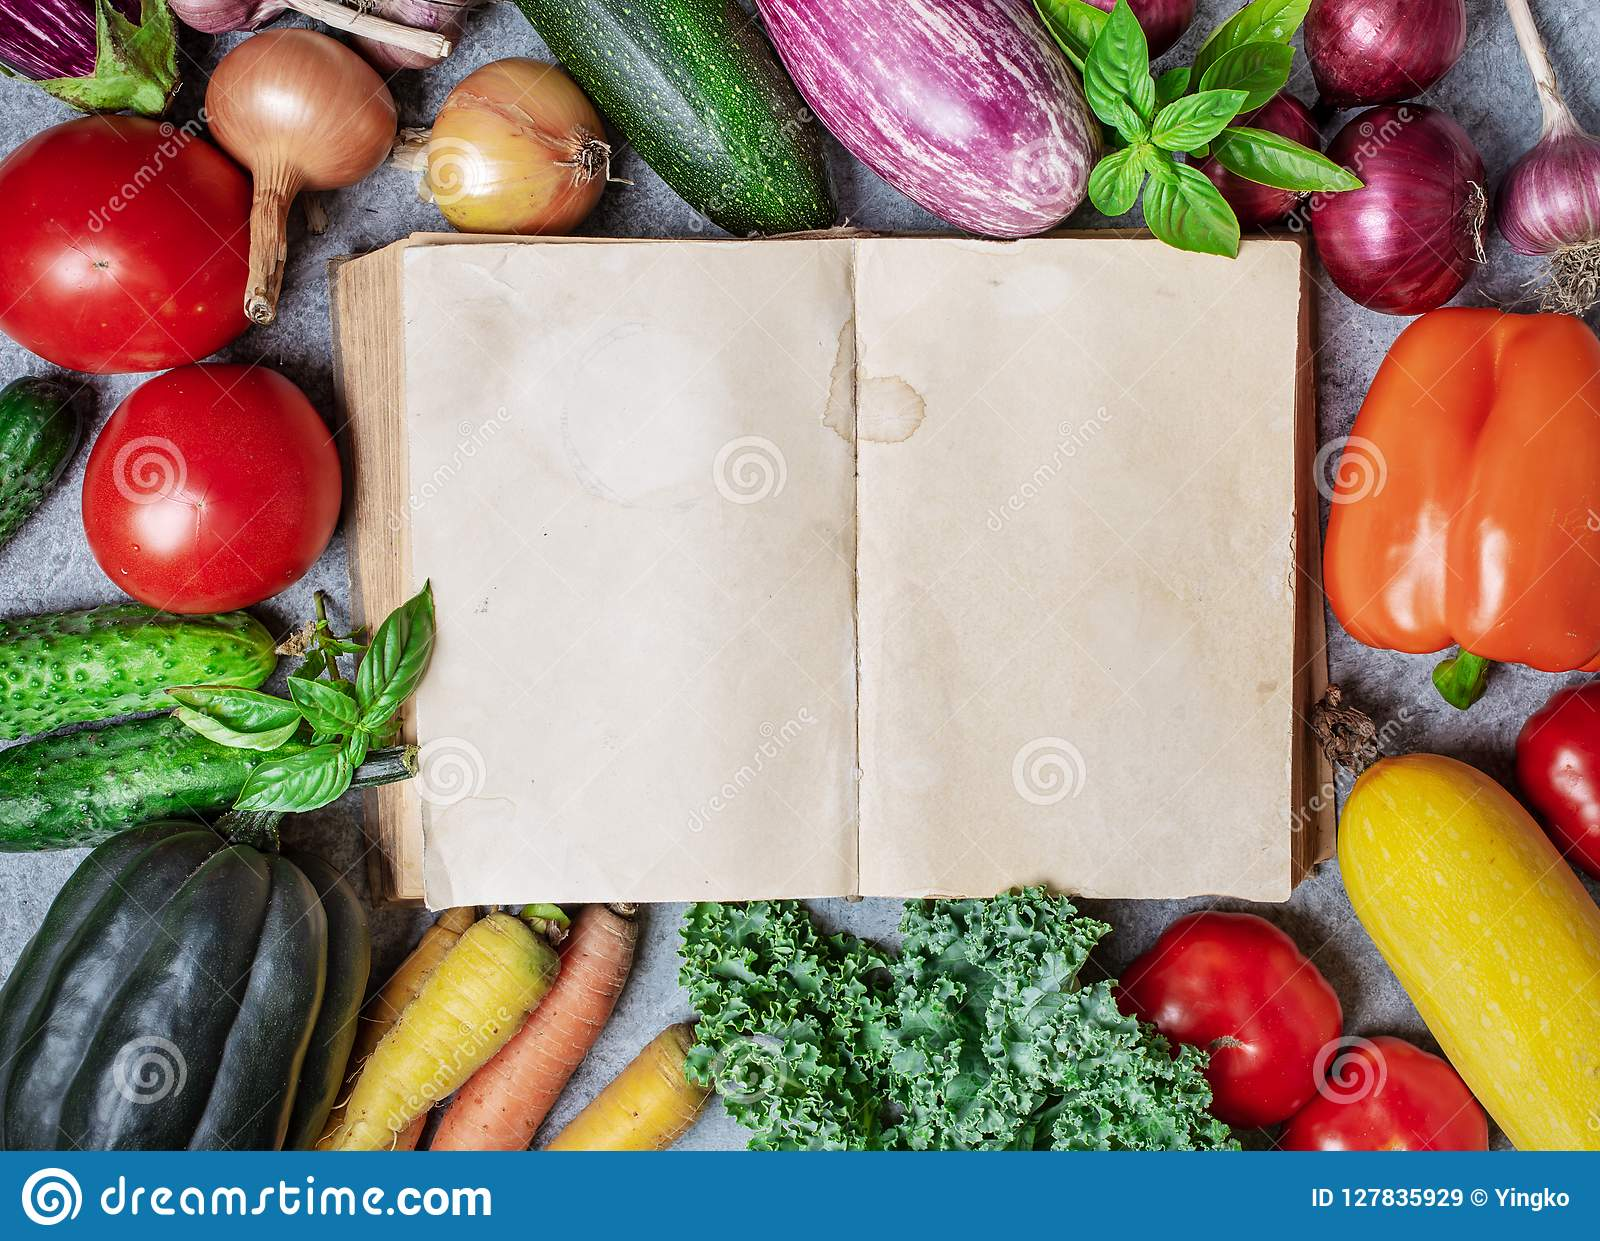 Old book and vegetables